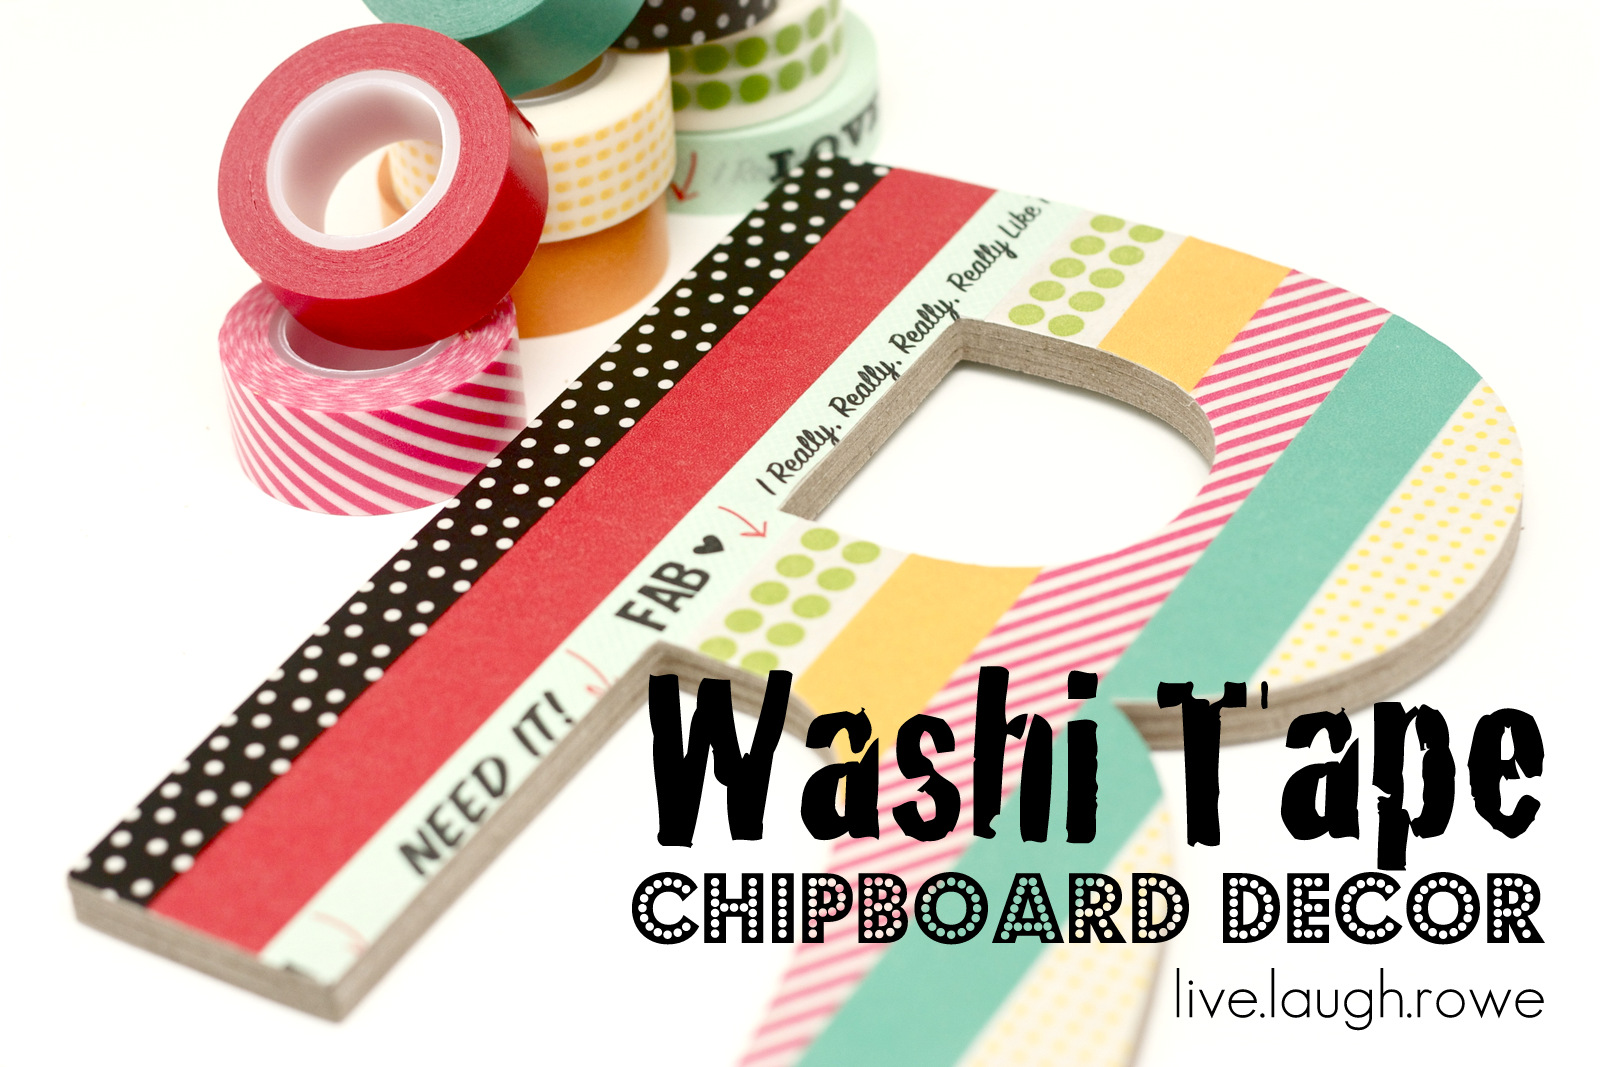 washi tape chipboard decor live laugh rowe. Black Bedroom Furniture Sets. Home Design Ideas